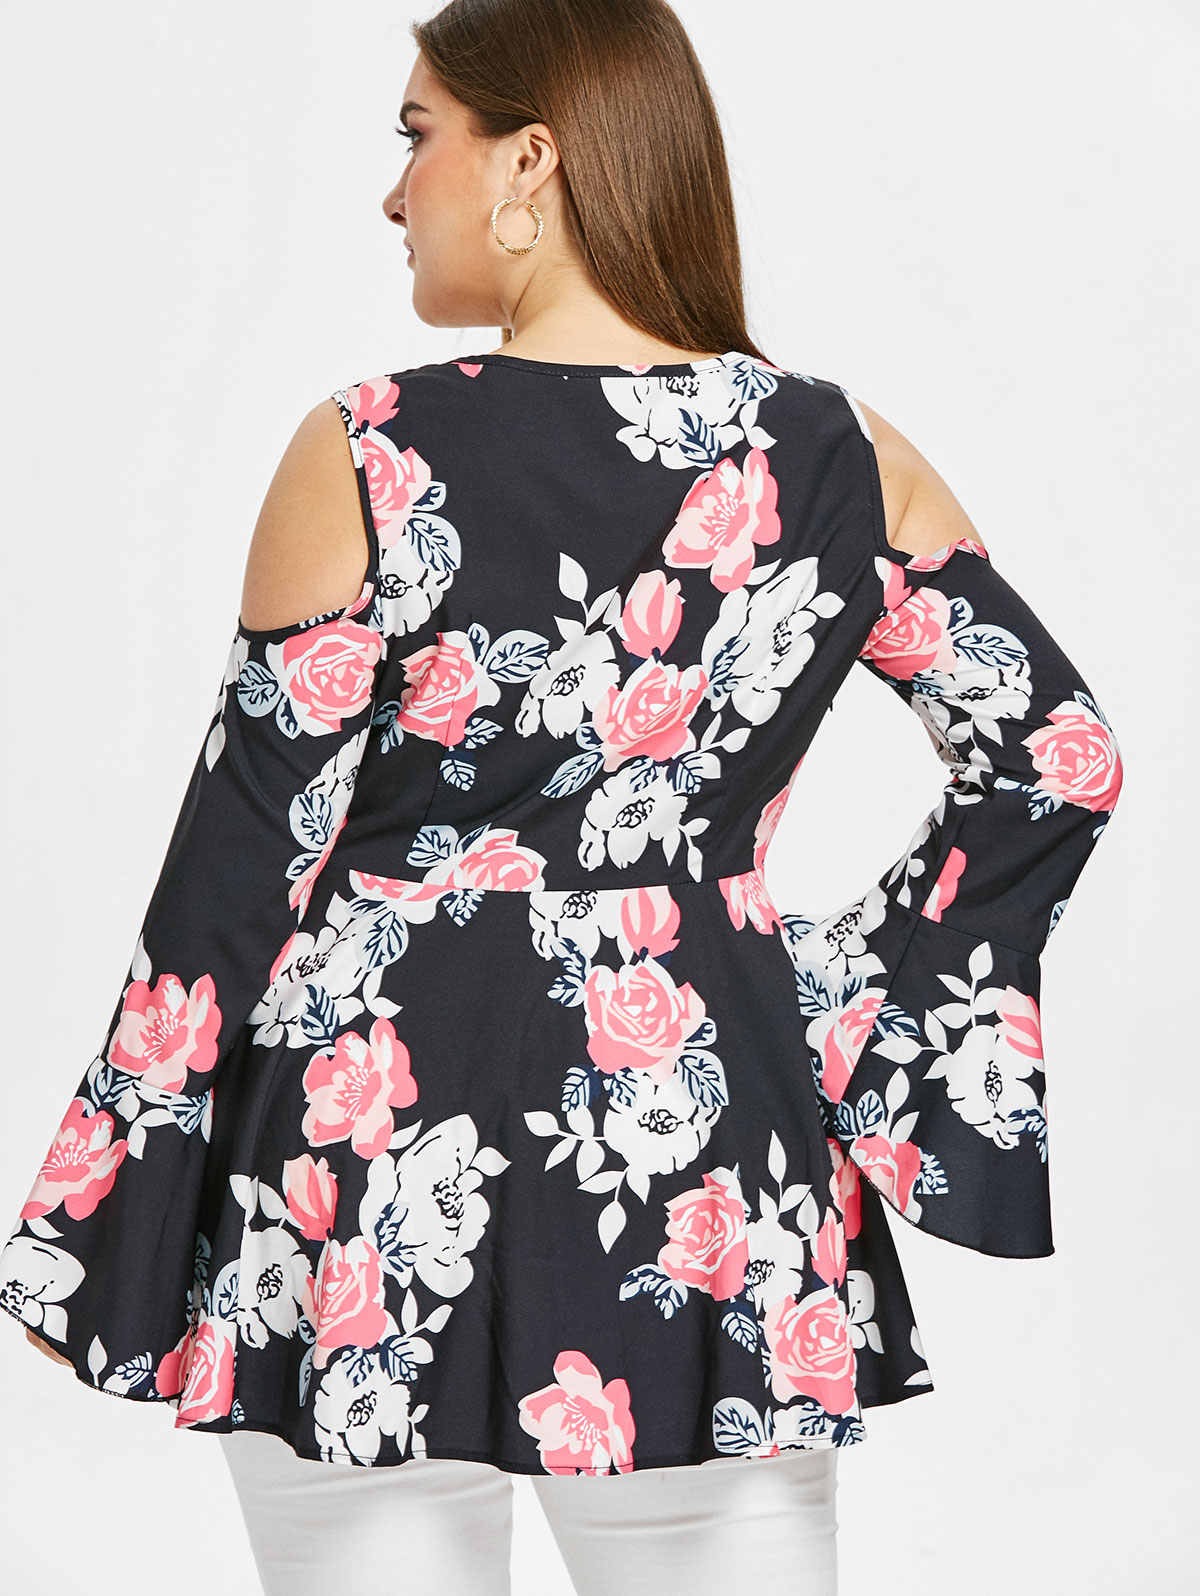 Wipalo Women Long Flare Sleeve Plus Size Floral Print Blouse V Neck Cold Shoulder High Waist Casual Blouse Ladies Spring Blusas